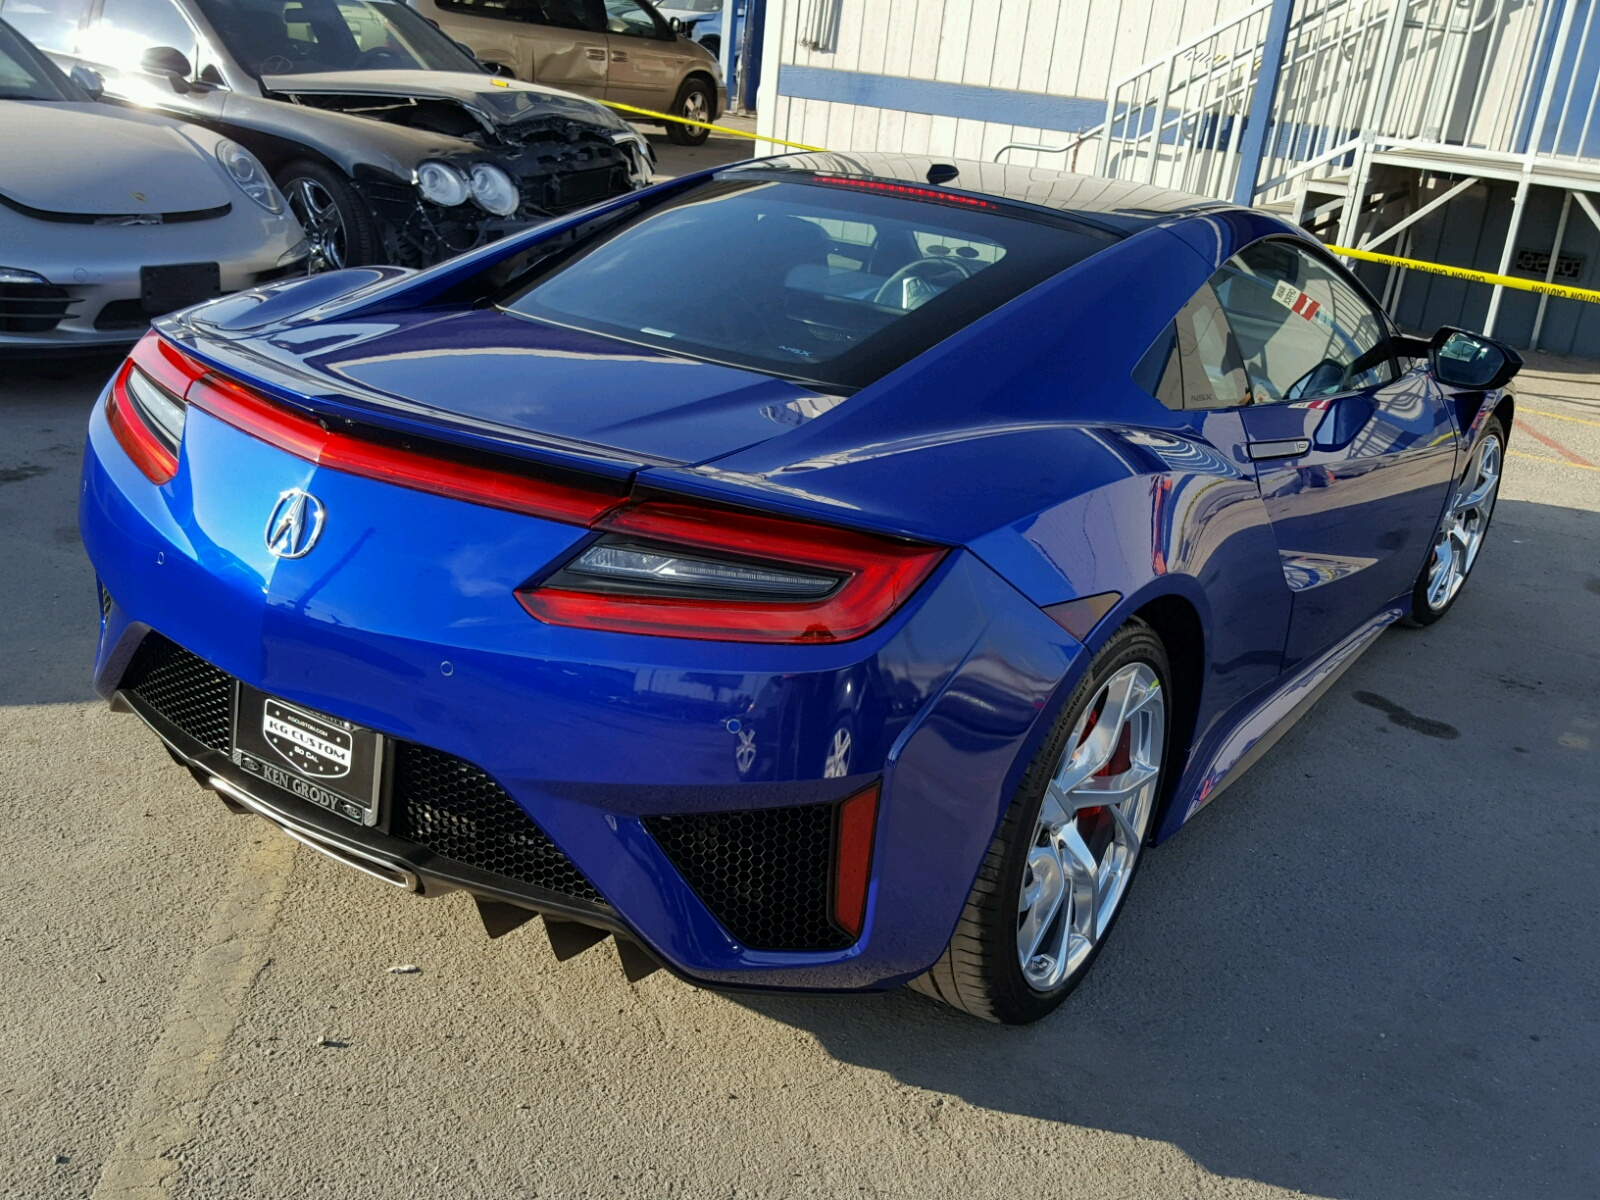 2017 Acura Nsx 3.5L 6 in CA - Los Angeles ...